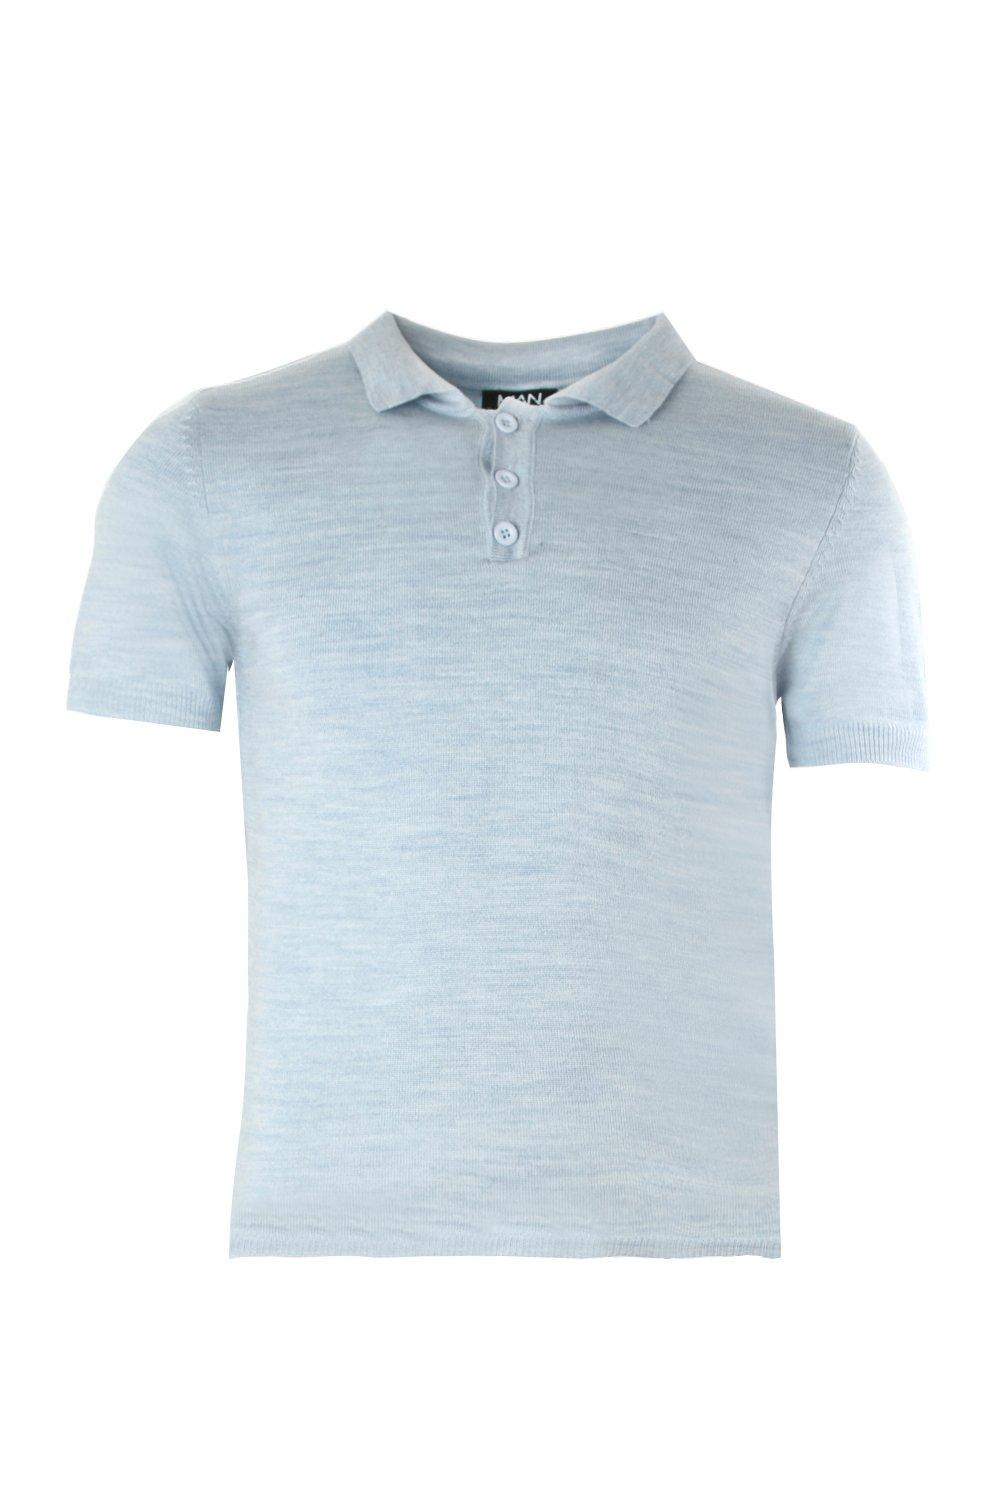 boohooMAN blue Soft Touch Knitted Polo